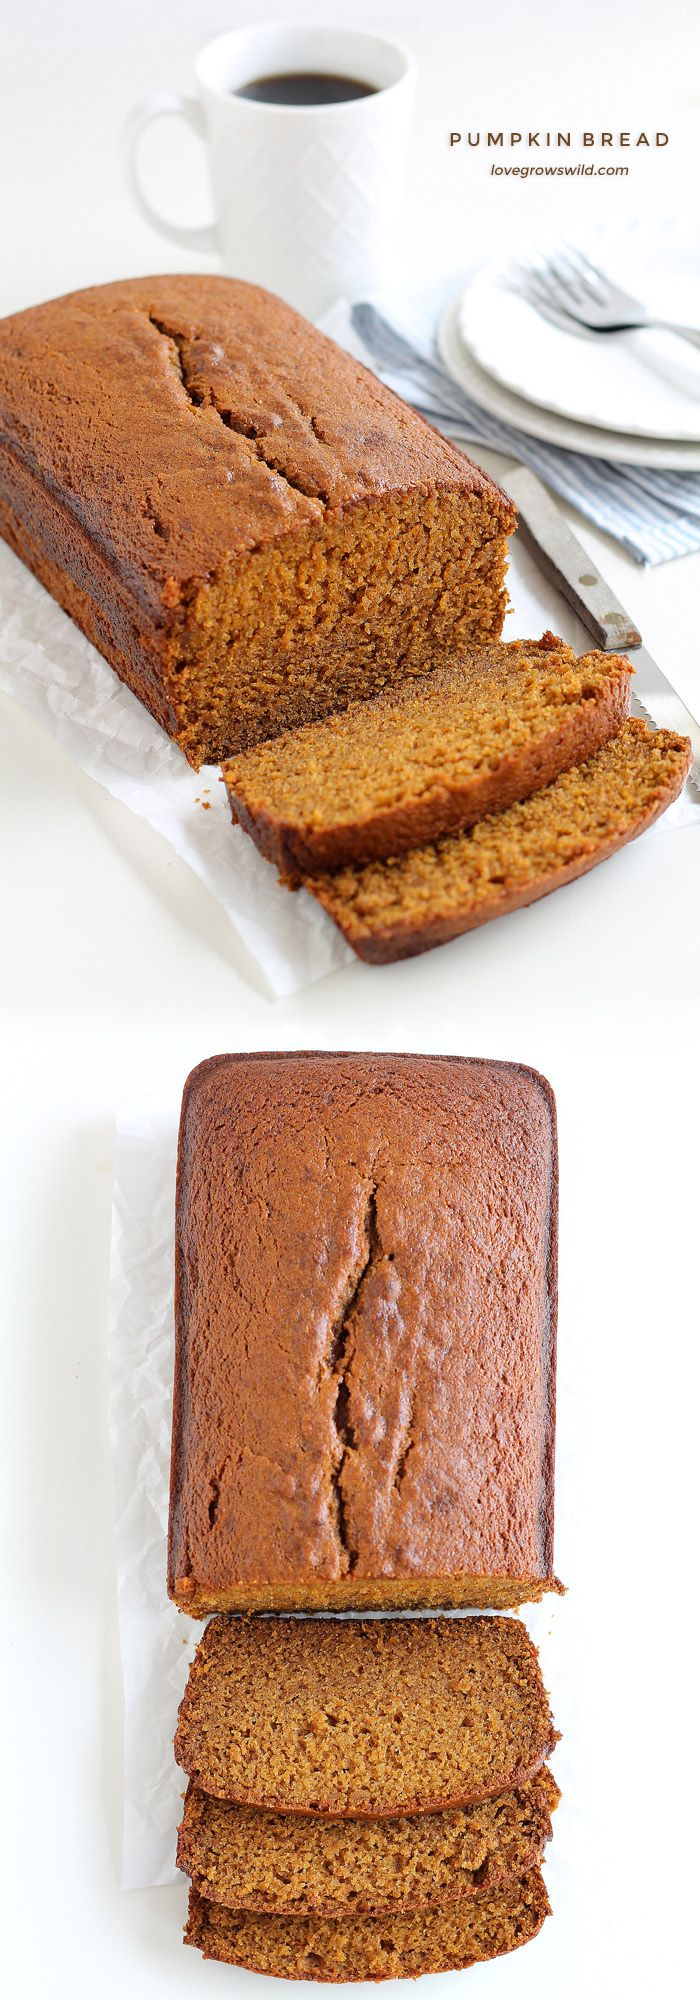 online shopping   plus size clothes in singapore This pumpkin bread recipe will knock your socks off  Moist  sweet  and full of pumpkin flavor    LoveGrowsWild com